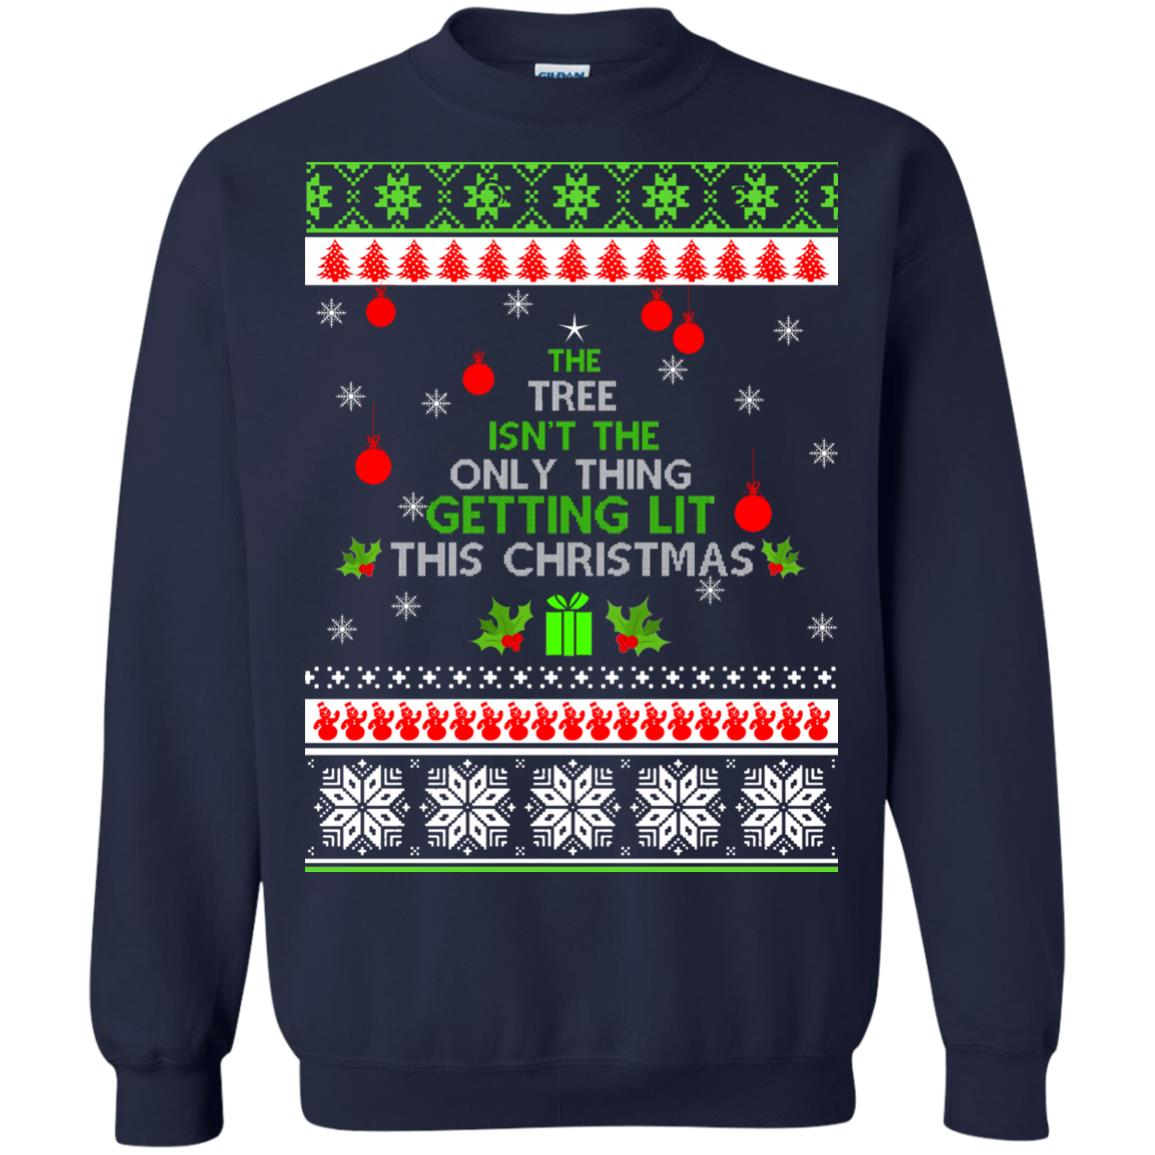 image 5570 - The Tree Isn't The Only Thing Getting Lit This Christmas Sweater, Long Sleeve